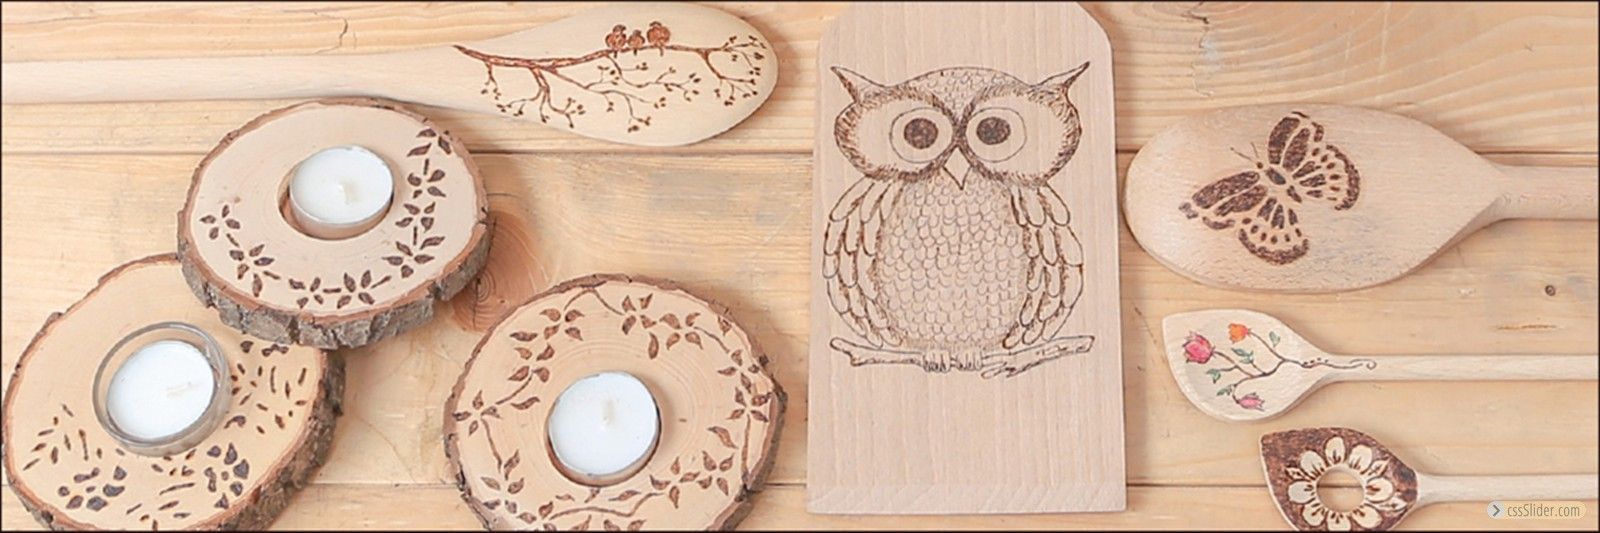 these motives were made with a Brennpeter - pyrography machine